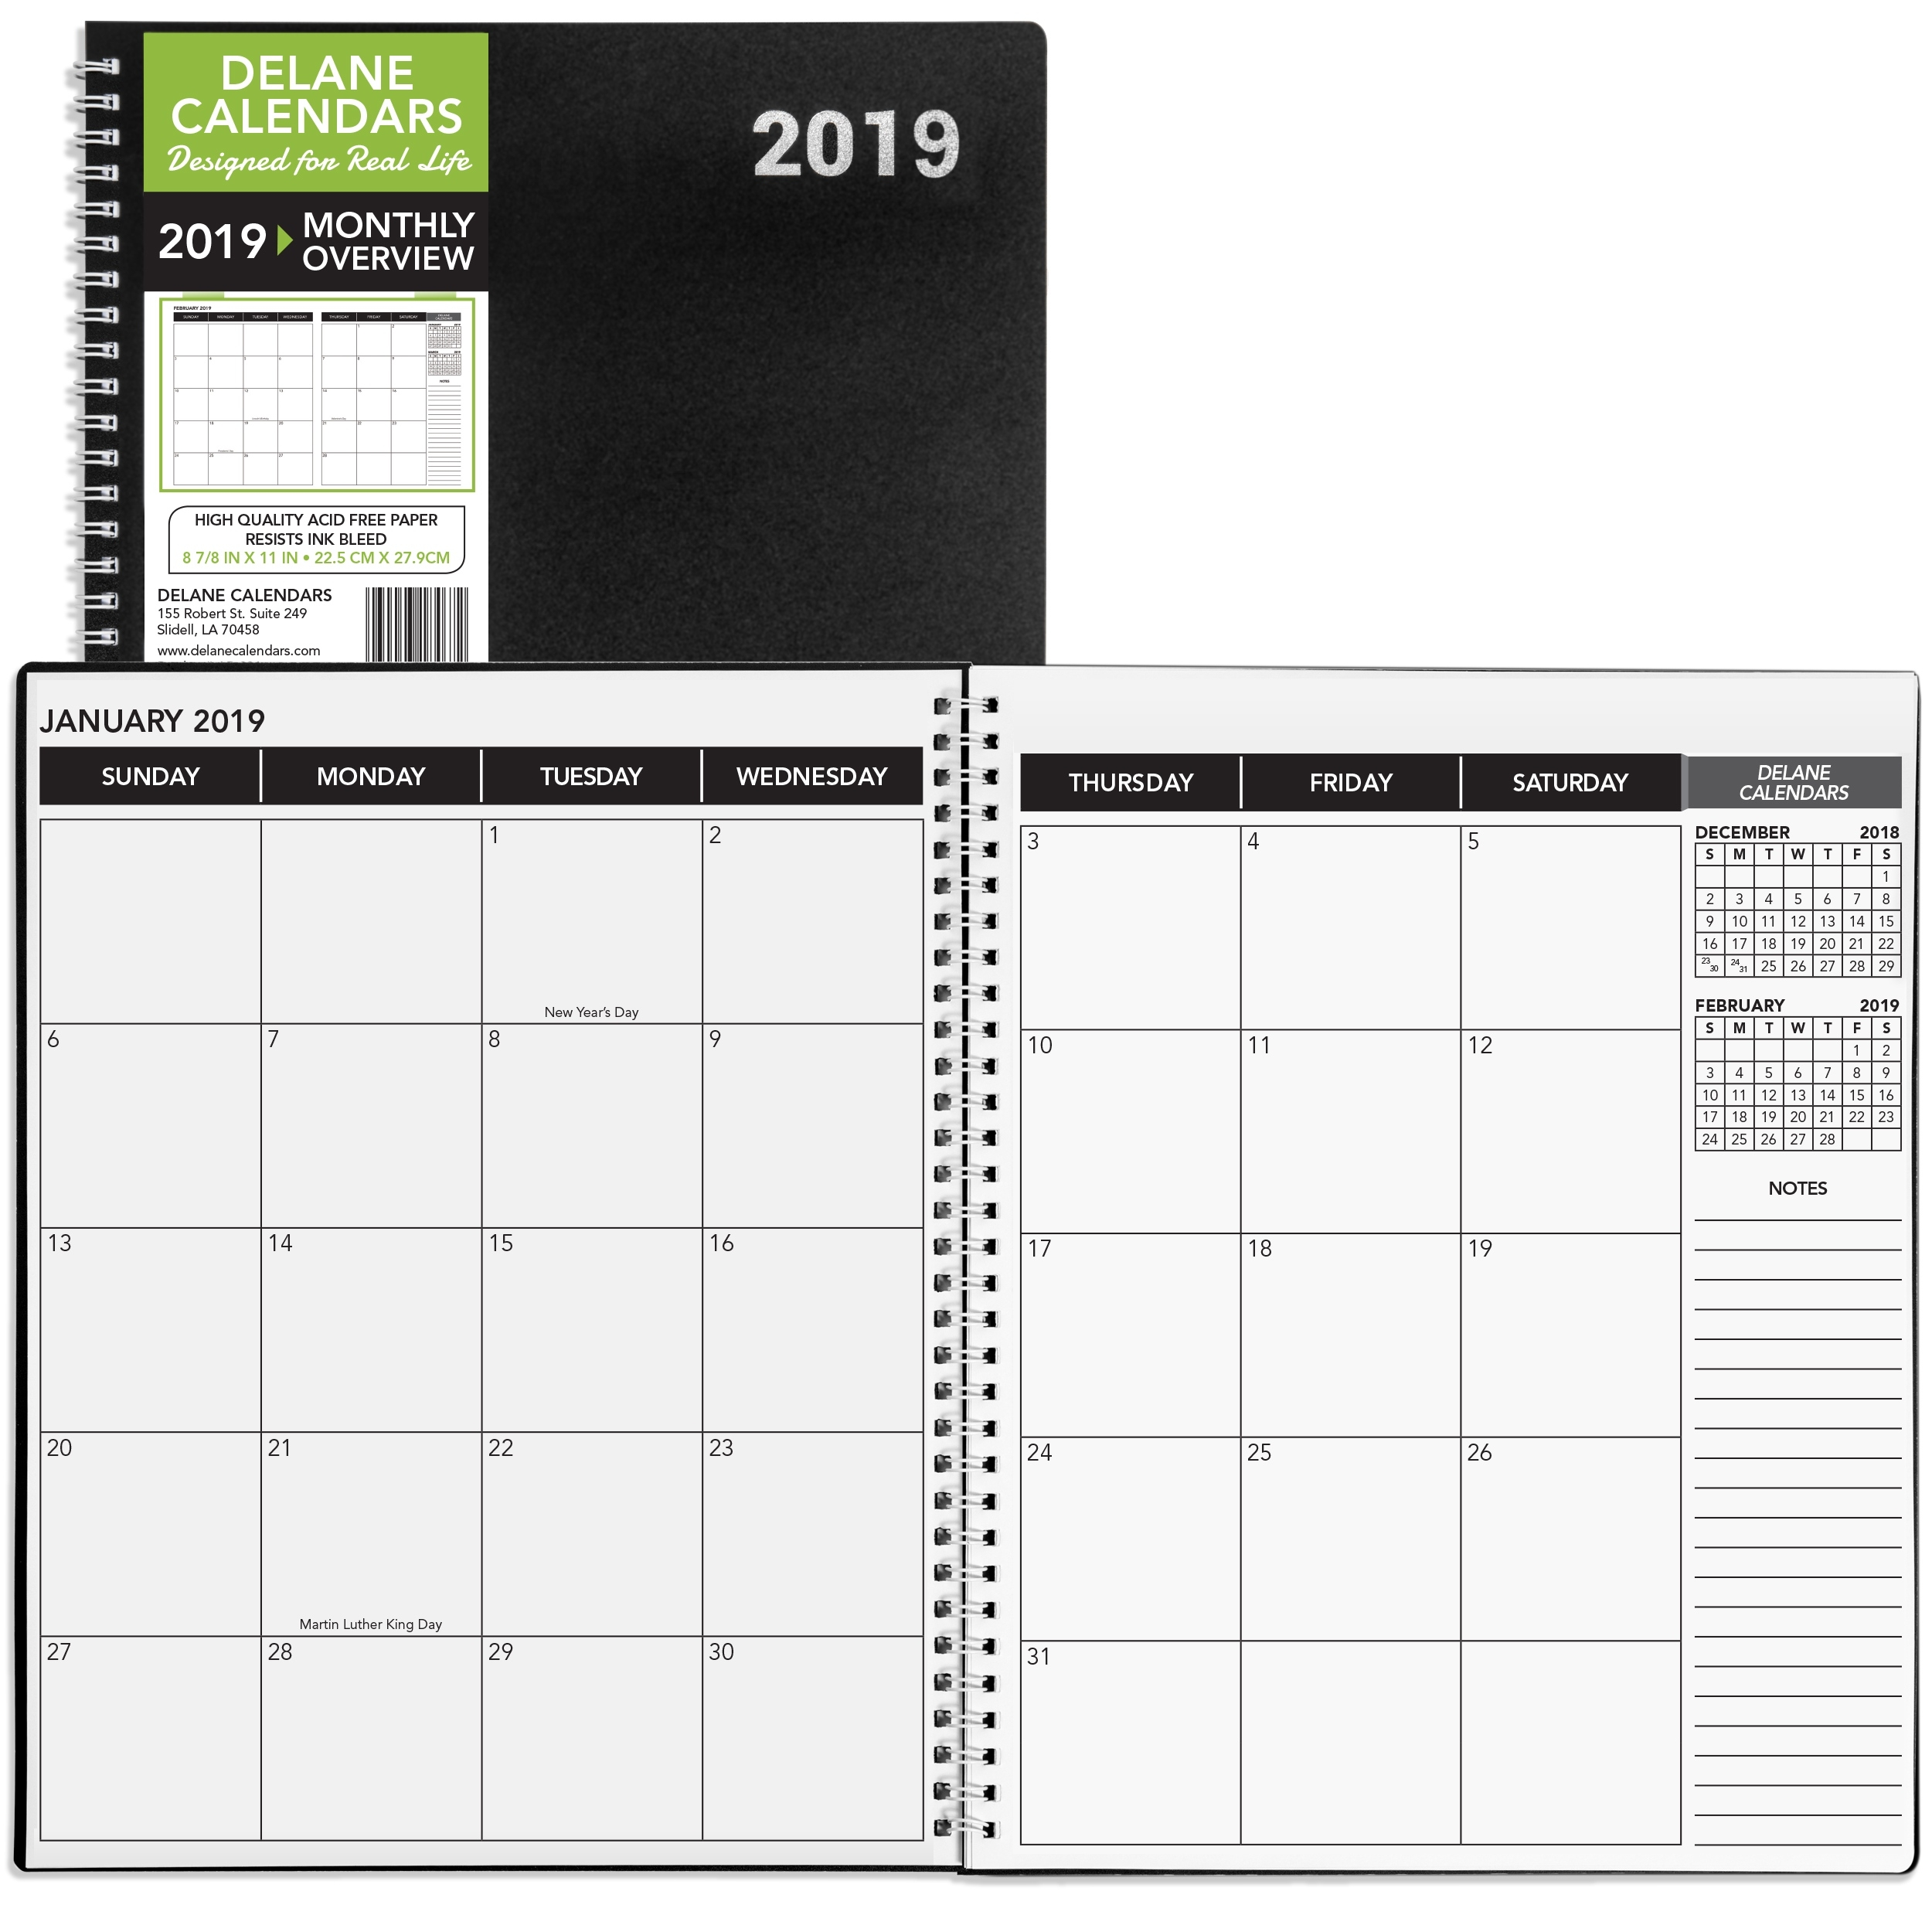 2019 Monthly Daily Planner Calendar / Appointment Book, Black Cover Monthly Calendar 8.5 X 11